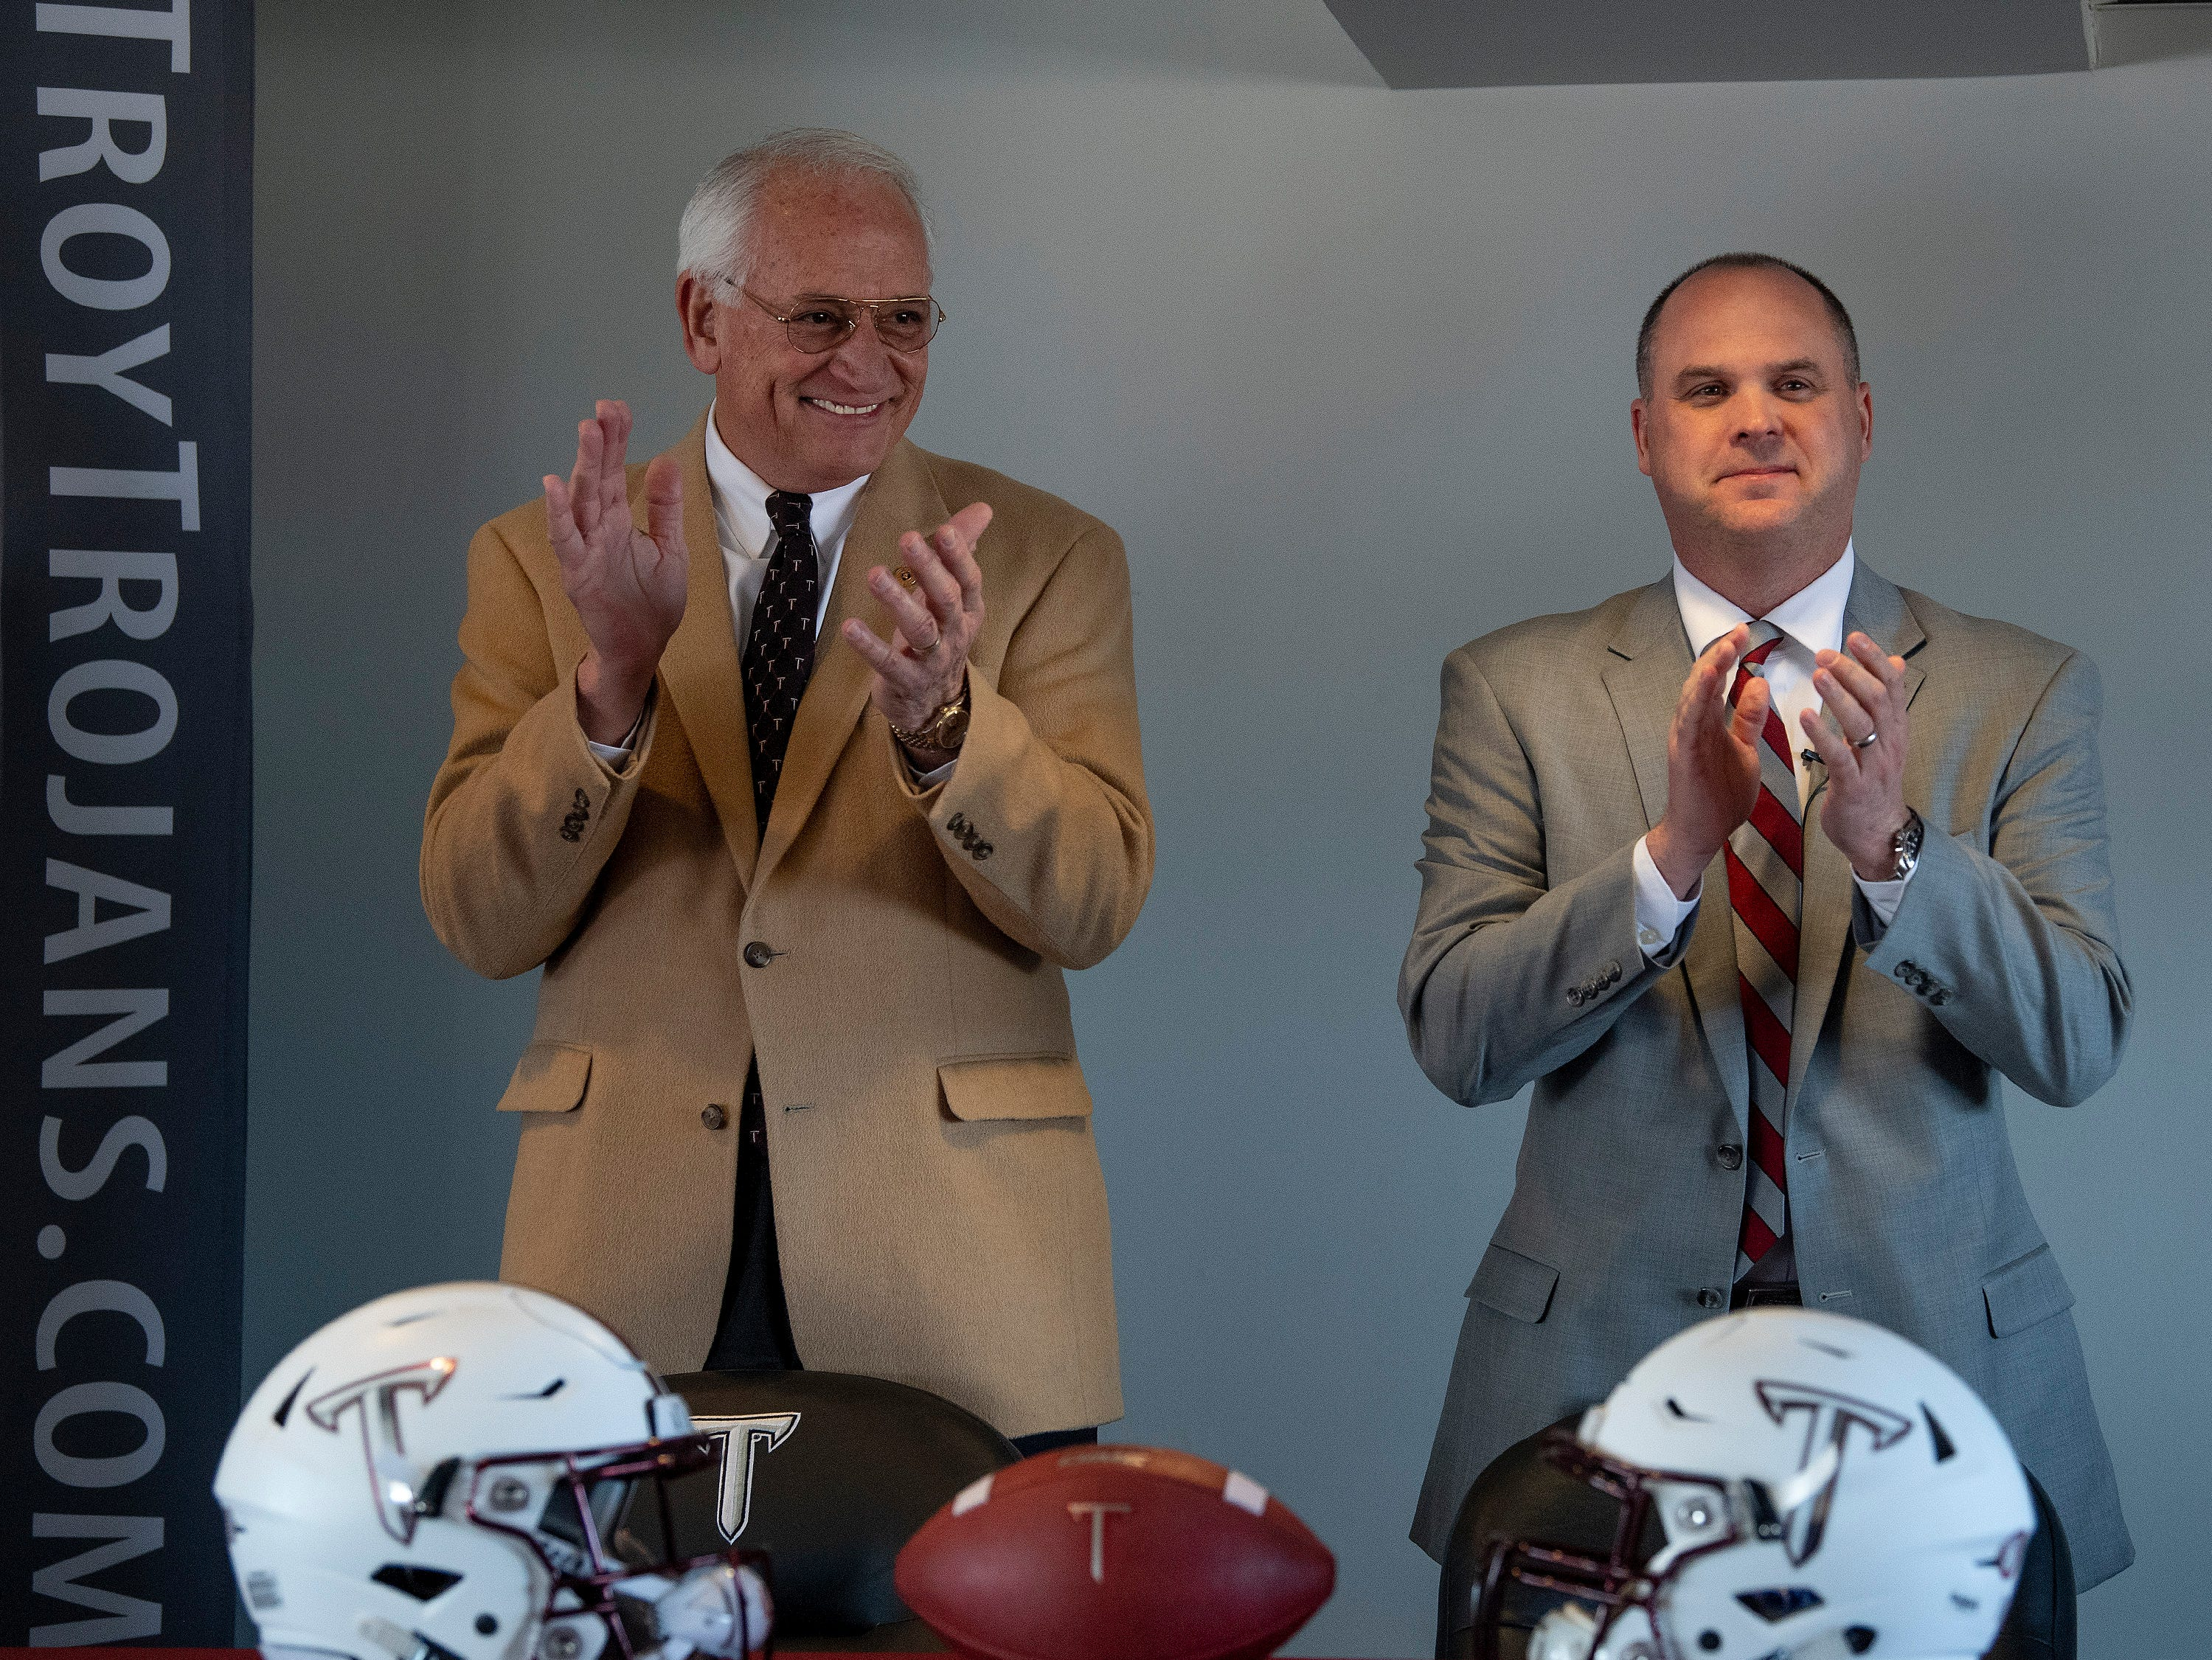 Troy University Chancellor Jack Hawkins, left, and Head Football Coach Chip Lindsey on the Troy campus in Troy, Ala., on Friday January 11, 2019.